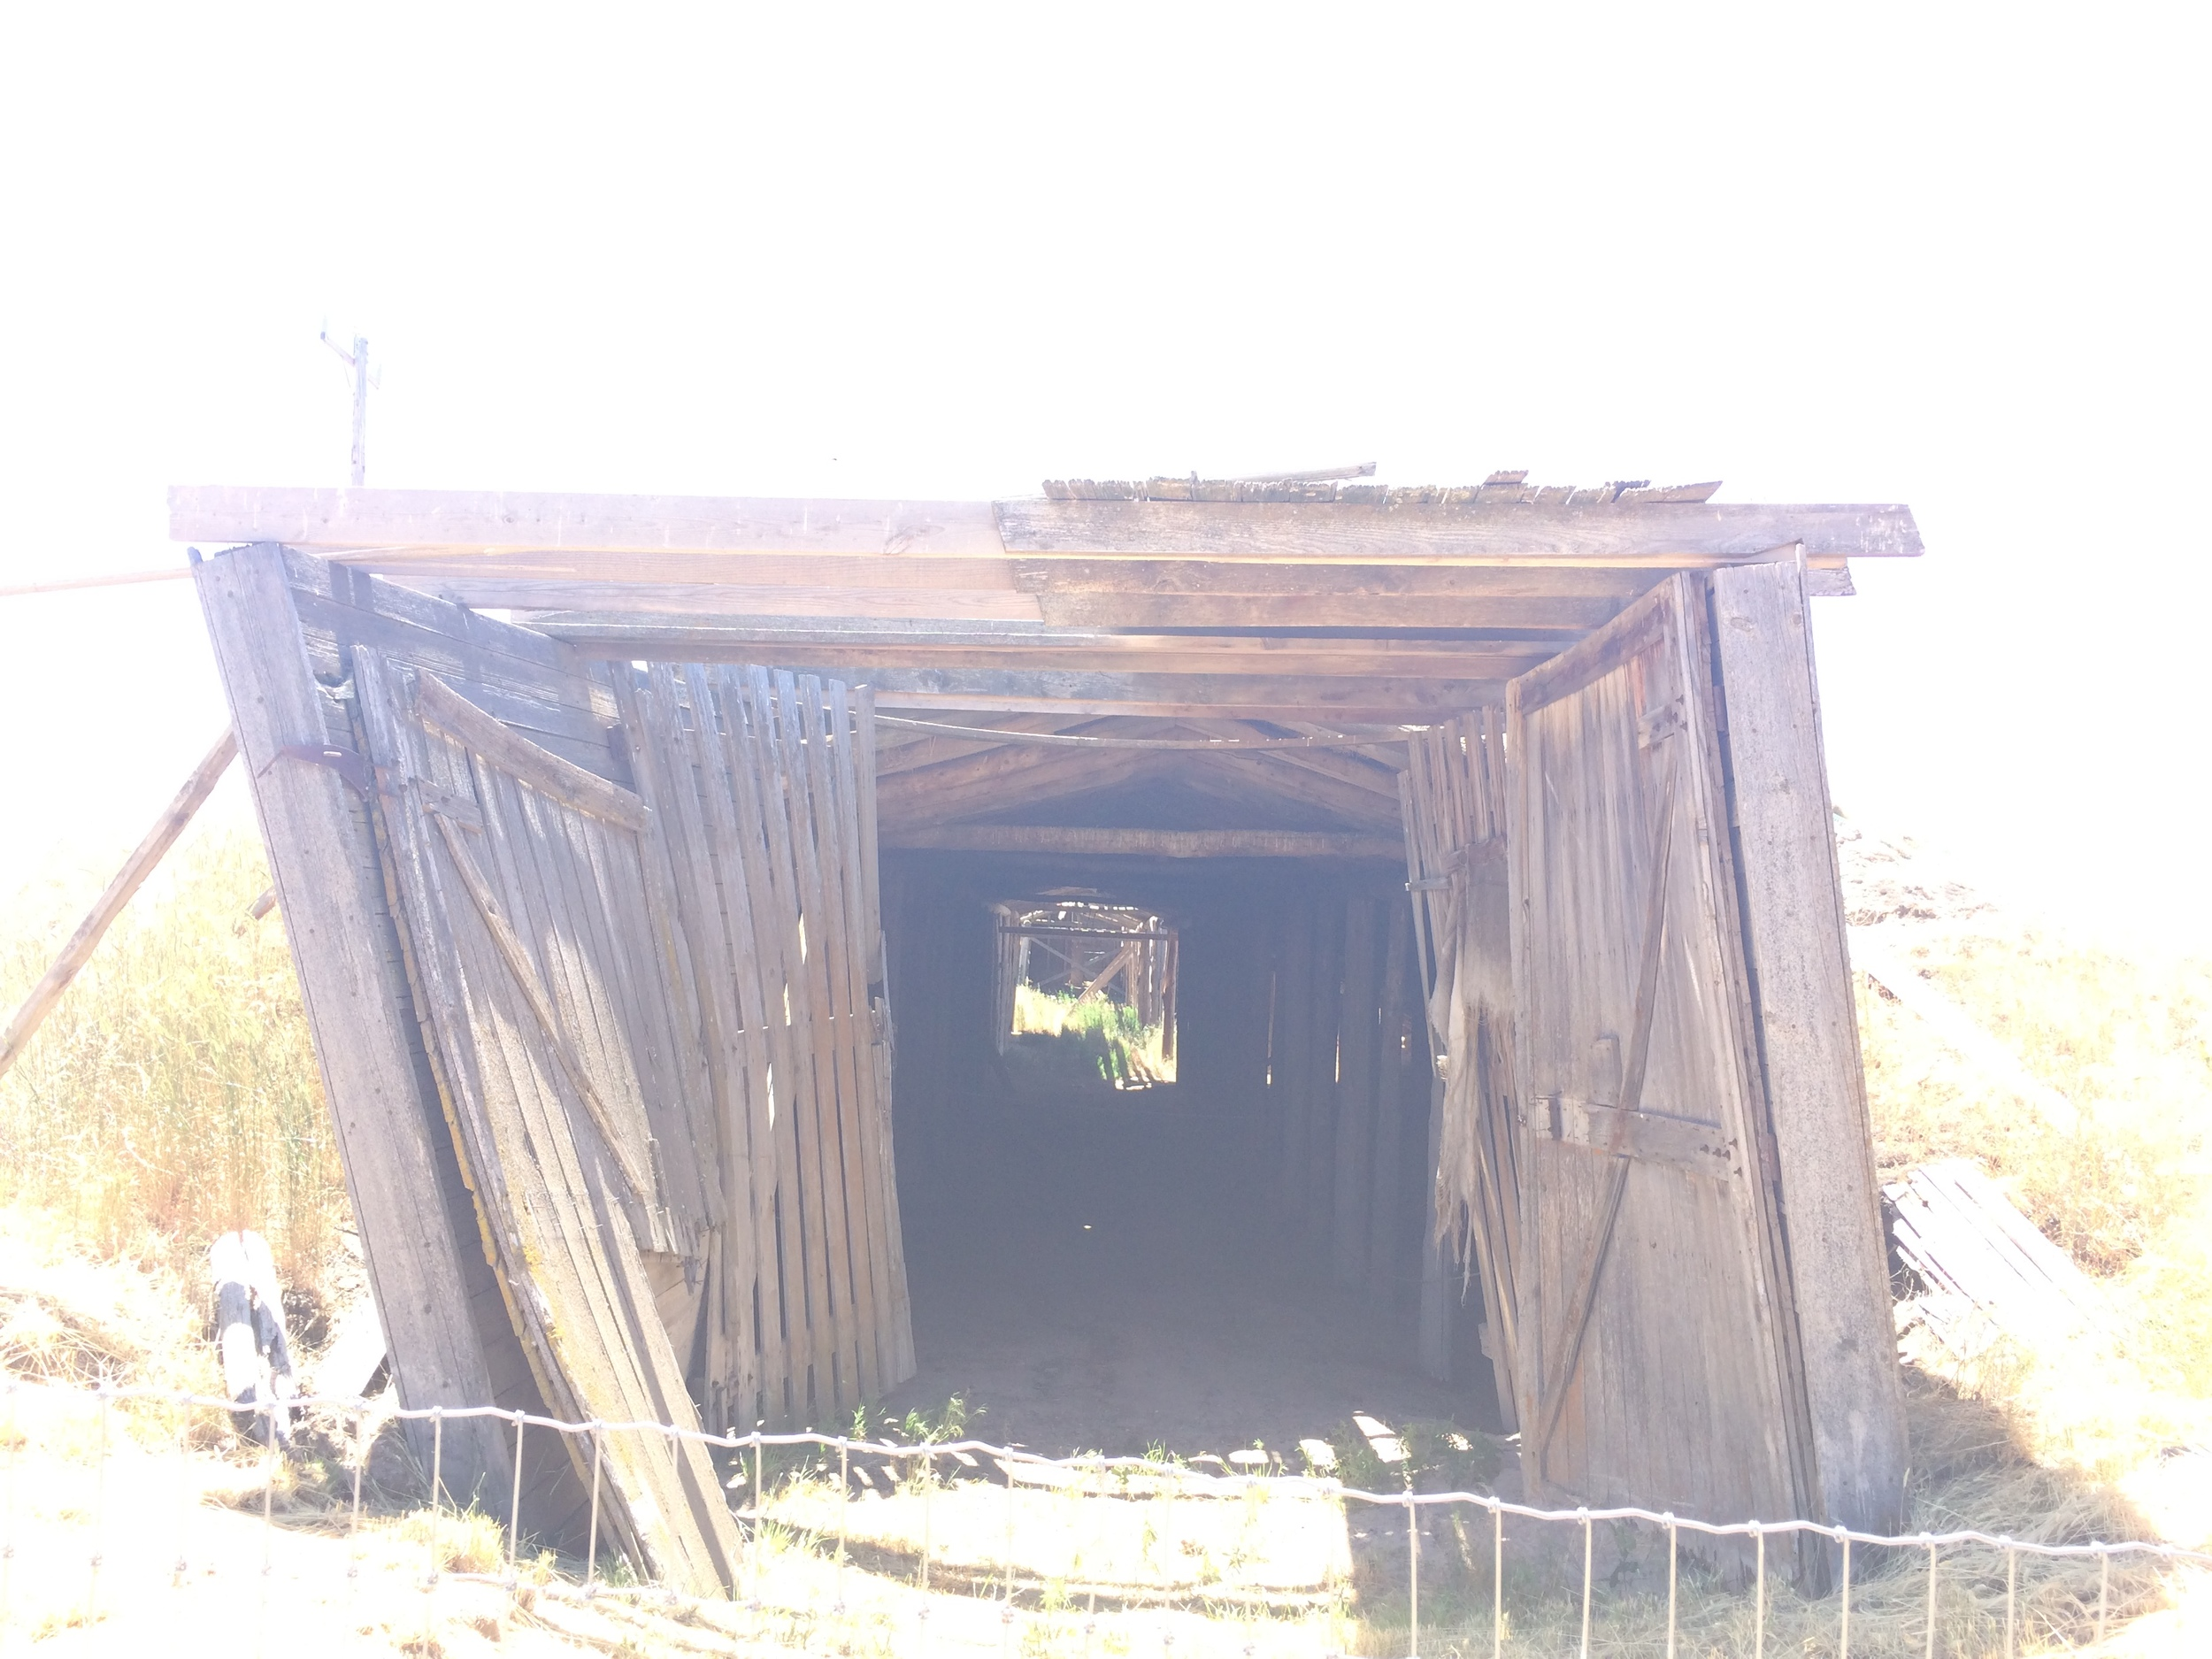 Minidoka Internment camp---this is a collapsing root cellar